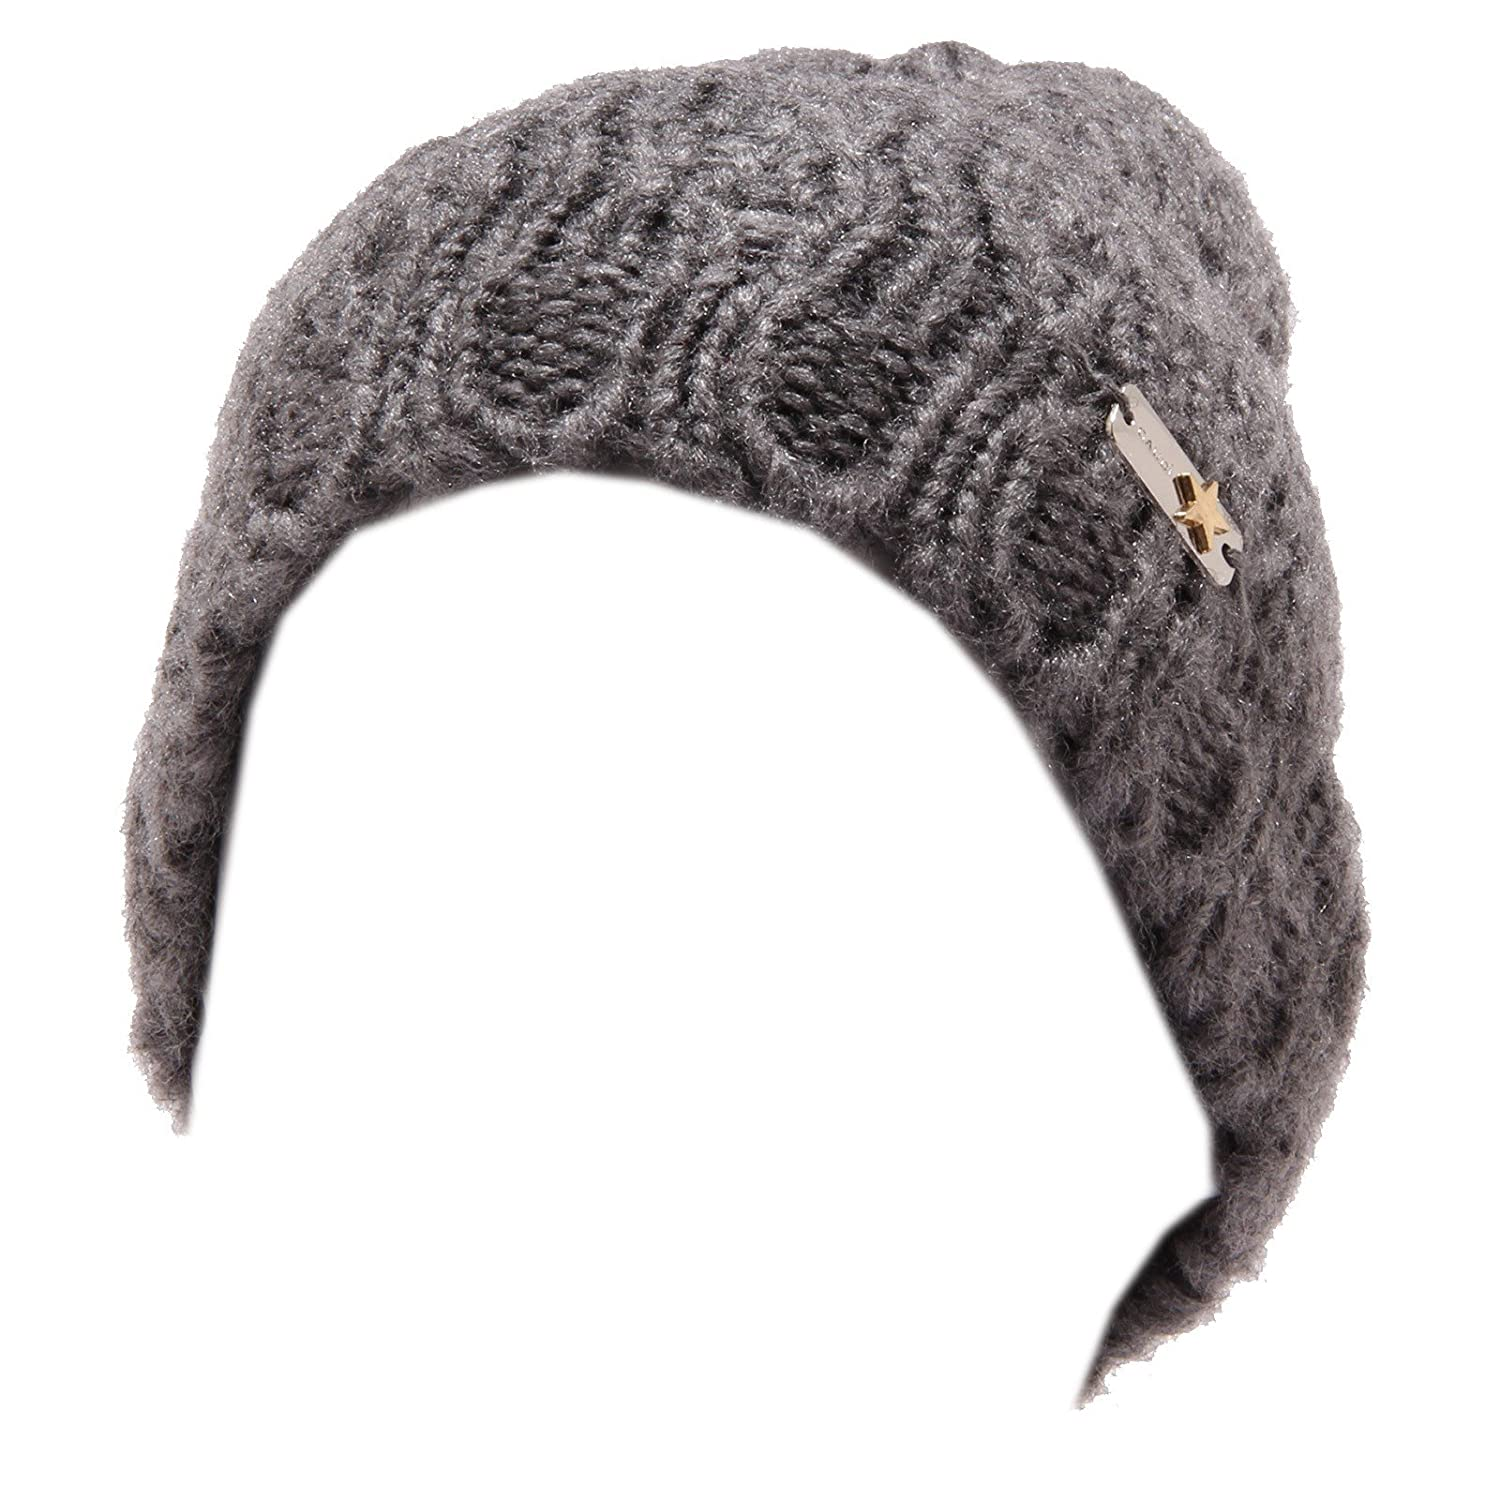 4805U cuffia bimba GAUDI' TEEN grigio grey hat kid girl